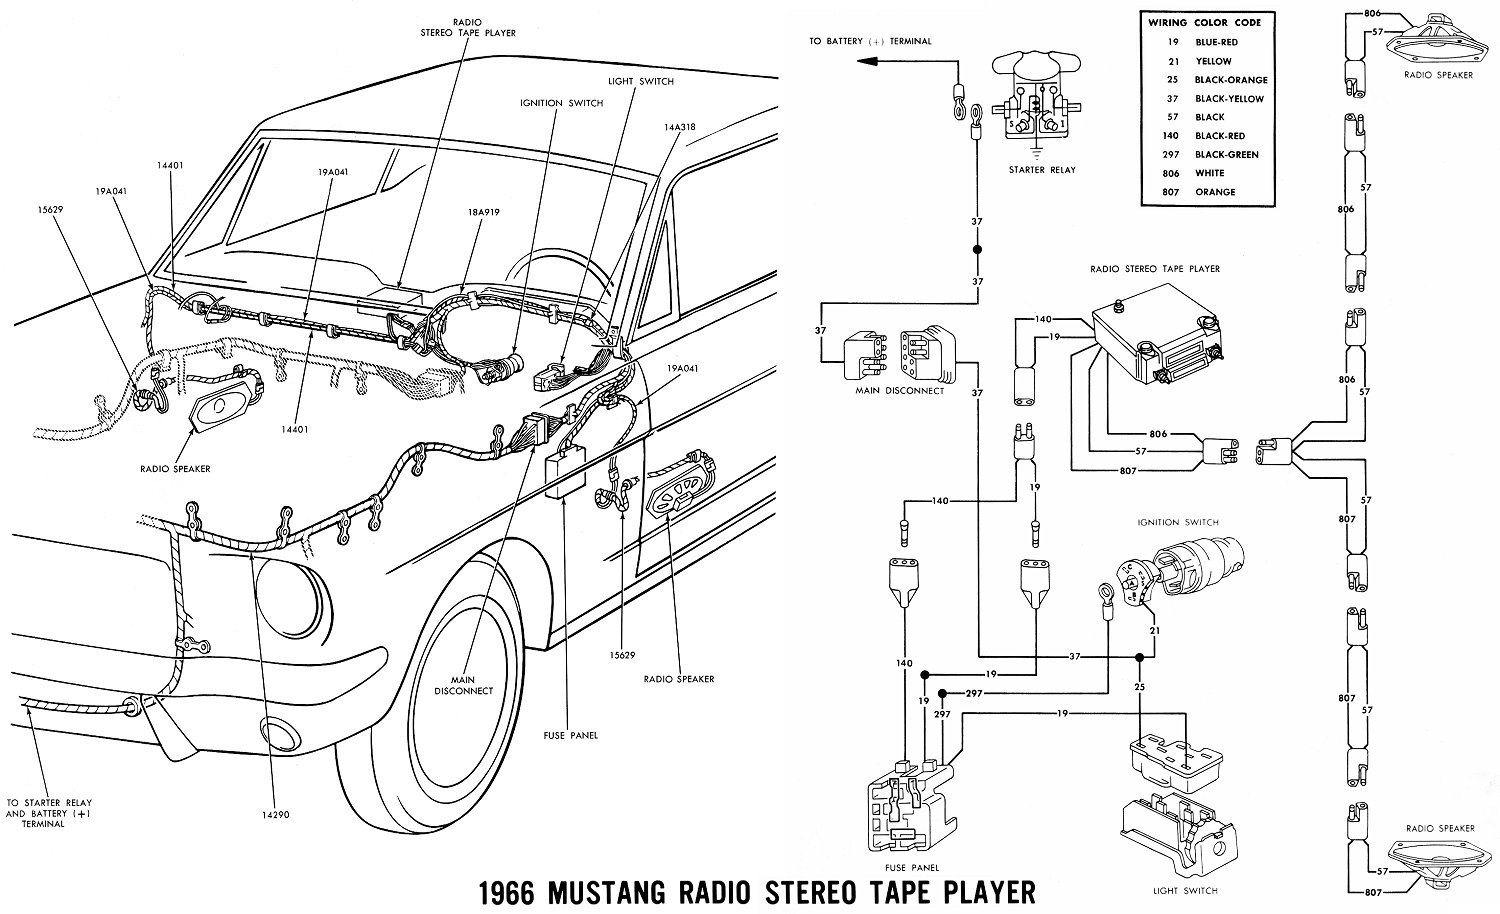 1966 mustang wiring diagrams - average joe restoration downloadable wiring diagram 1966 ford mustang radio wire diagram 1966 ford mustang wiring 1988